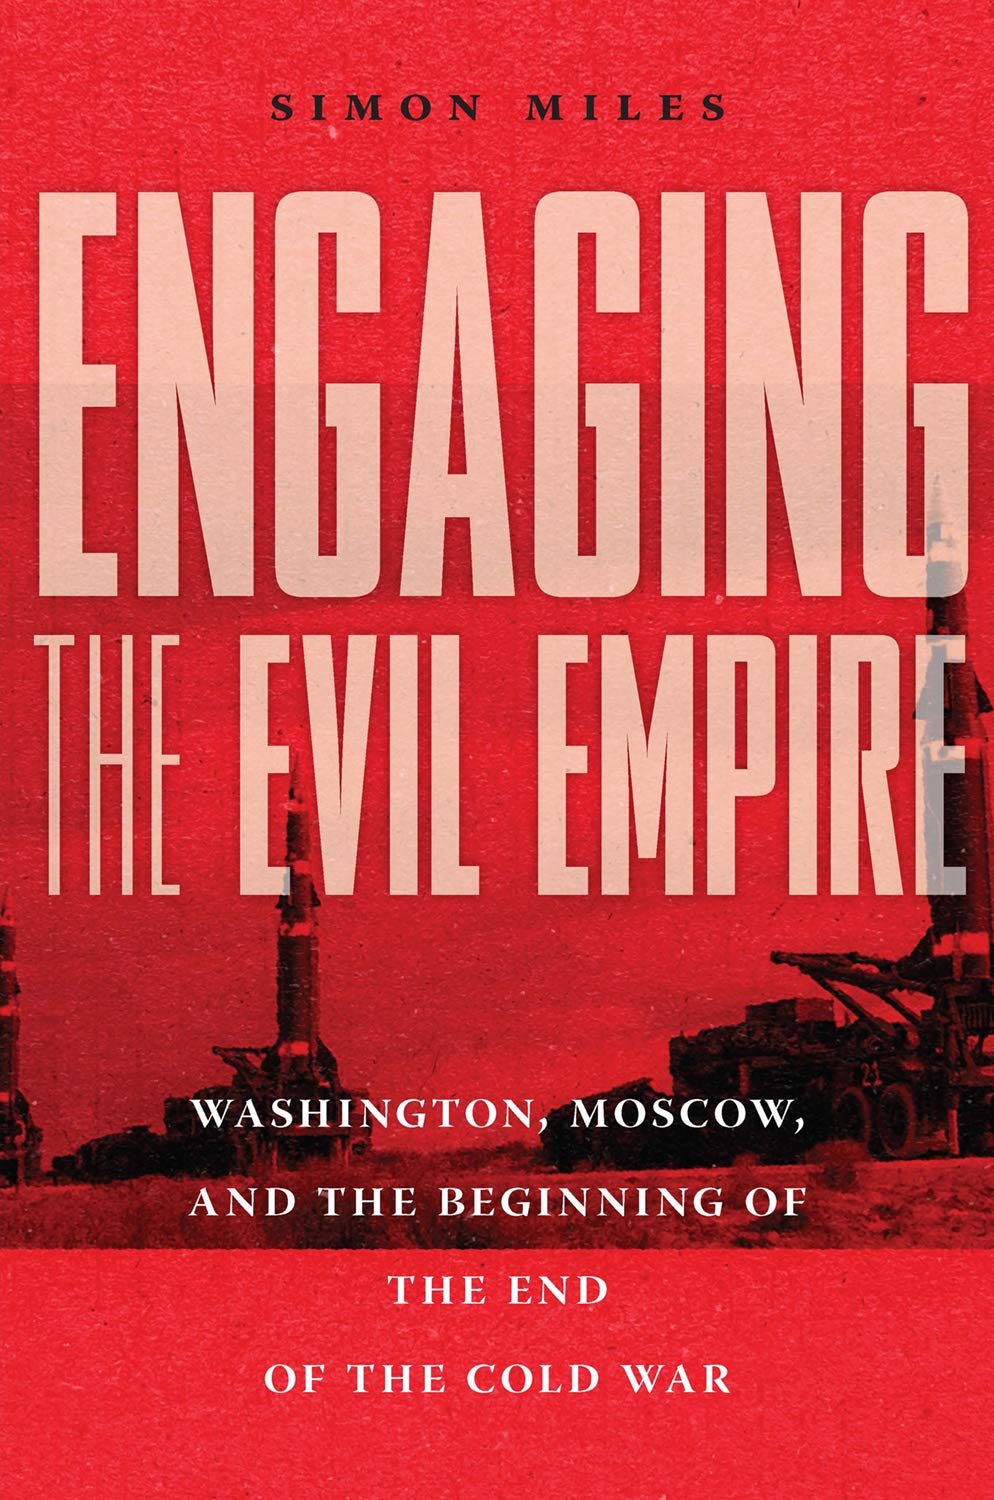 Engaging the Evil Empire: Washington, Moscow, and the Beginning of the End of the Cold War: Miles, Simon: 9781501751691: Amazon.com: Books